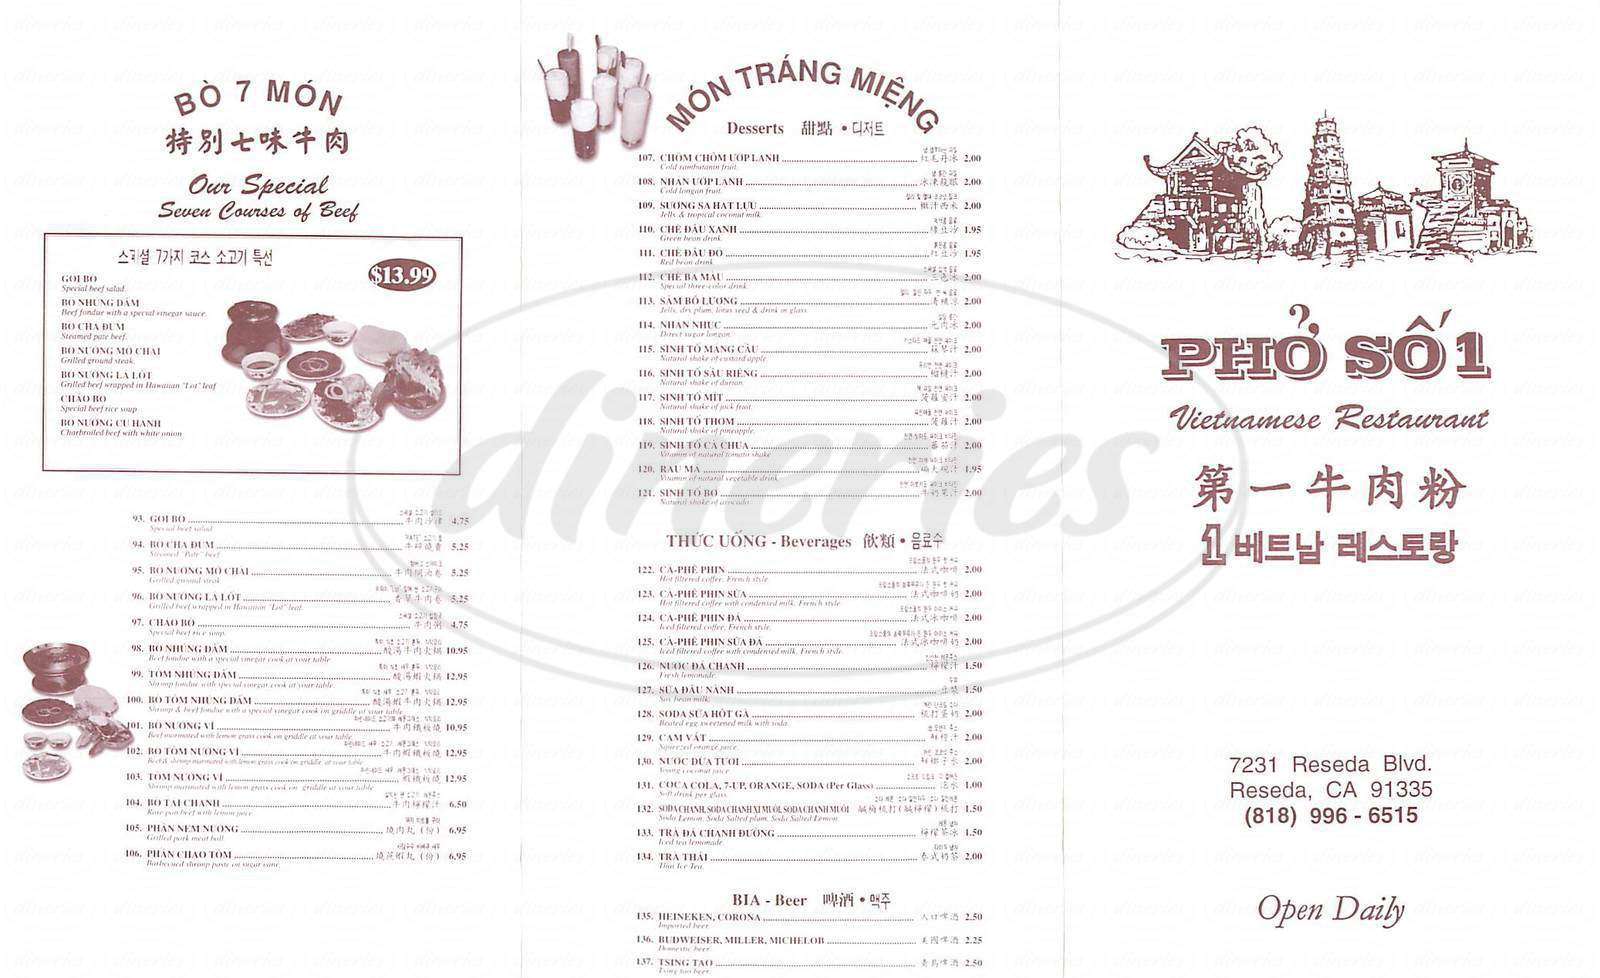 menu for Pho So 1